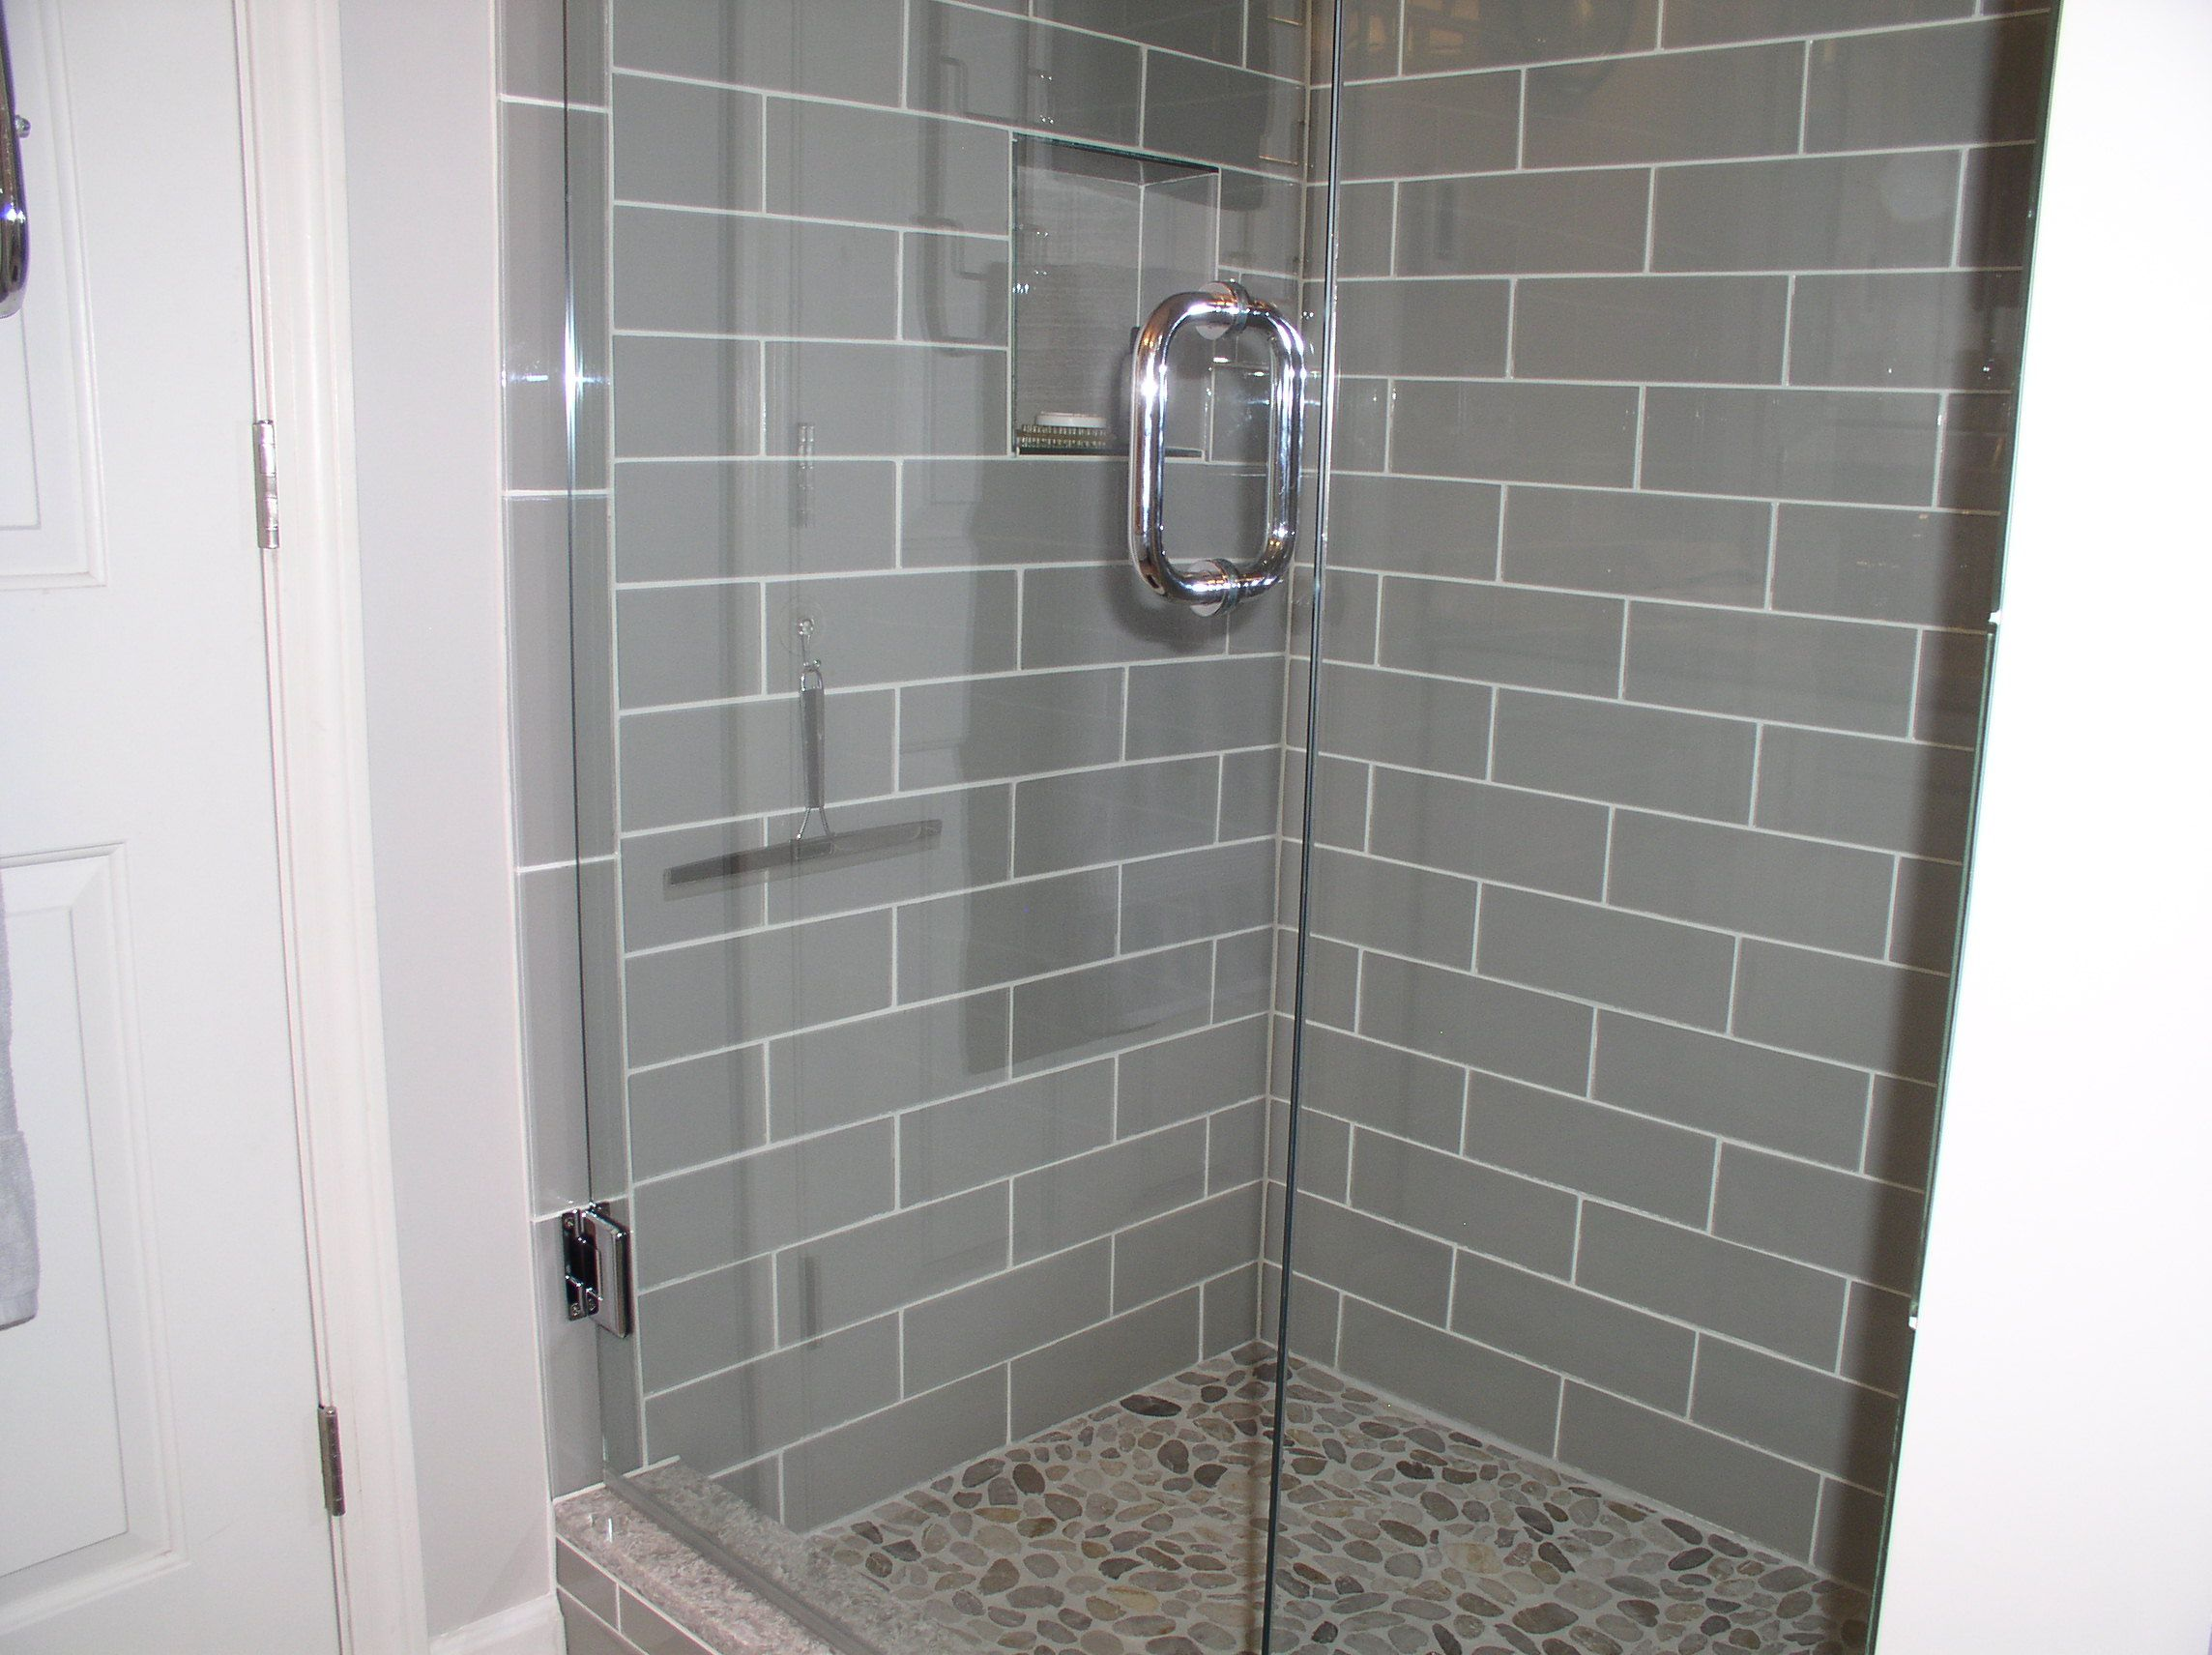 Smoke glass 4 x 12 shower walls with our sliced pebble tile on the